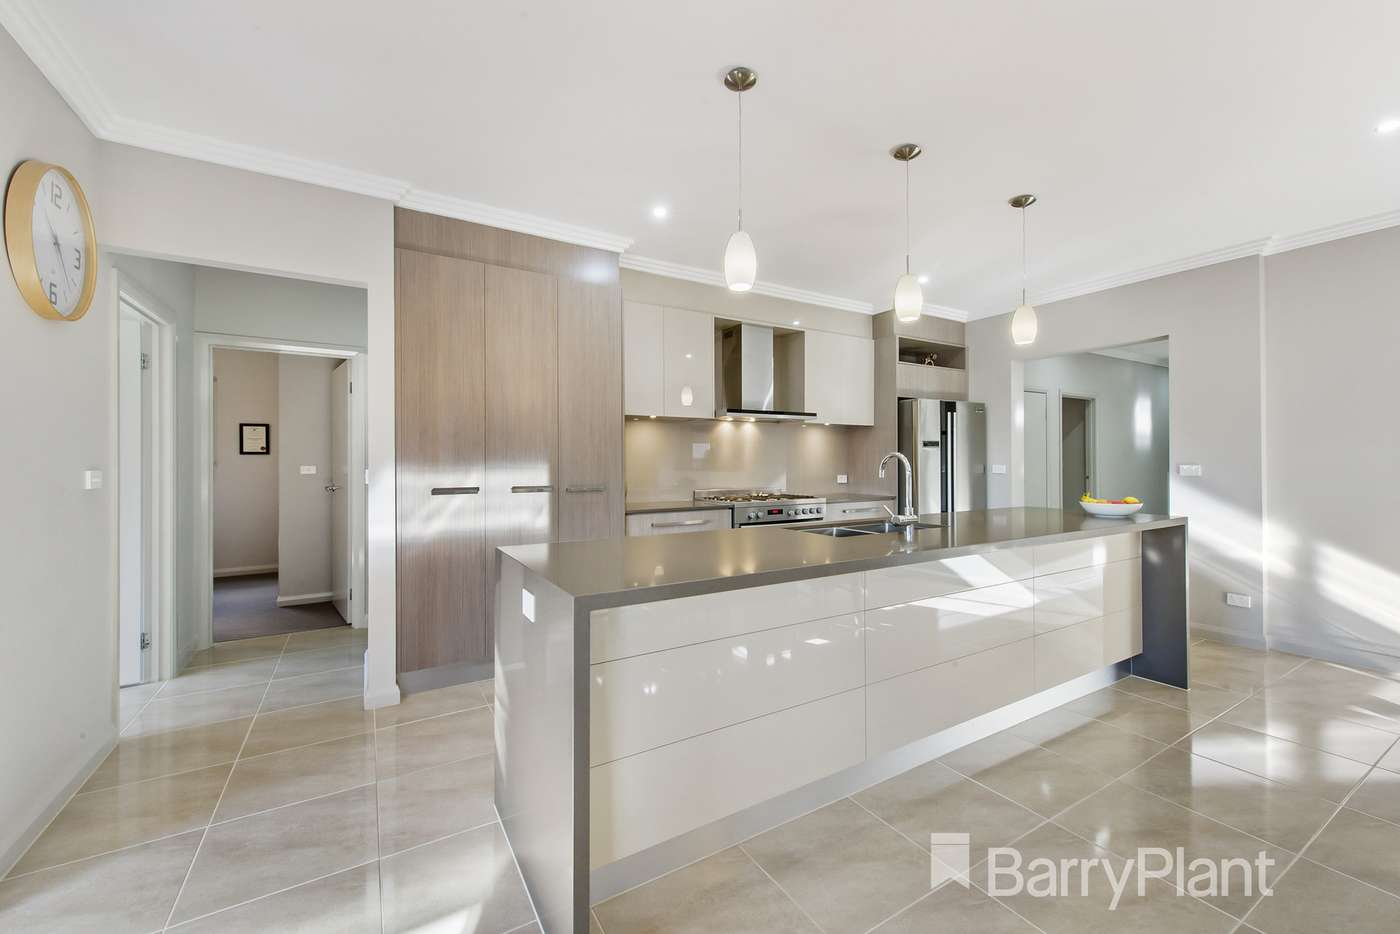 Sixth view of Homely house listing, 13 Sullivan Place, Harkness VIC 3337